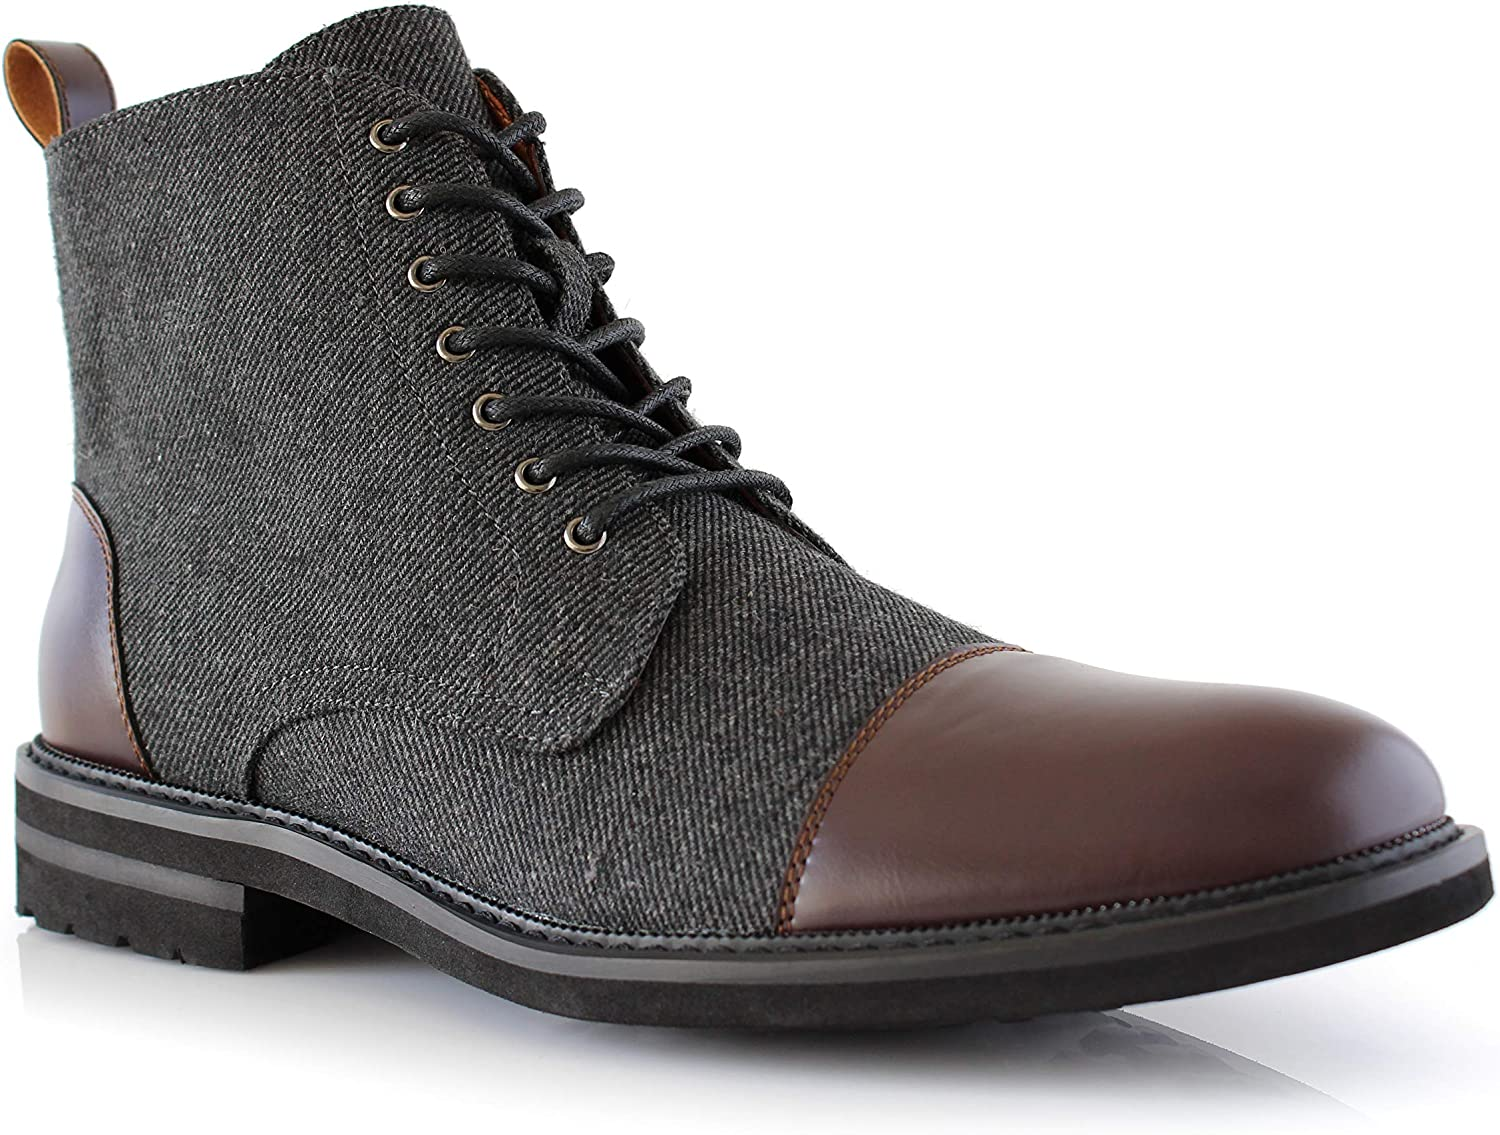 Polar Fox OFFicial store Milwaukee Mall Brooke MPX806061 Grey and Leather Fashi Woolen Lace-up